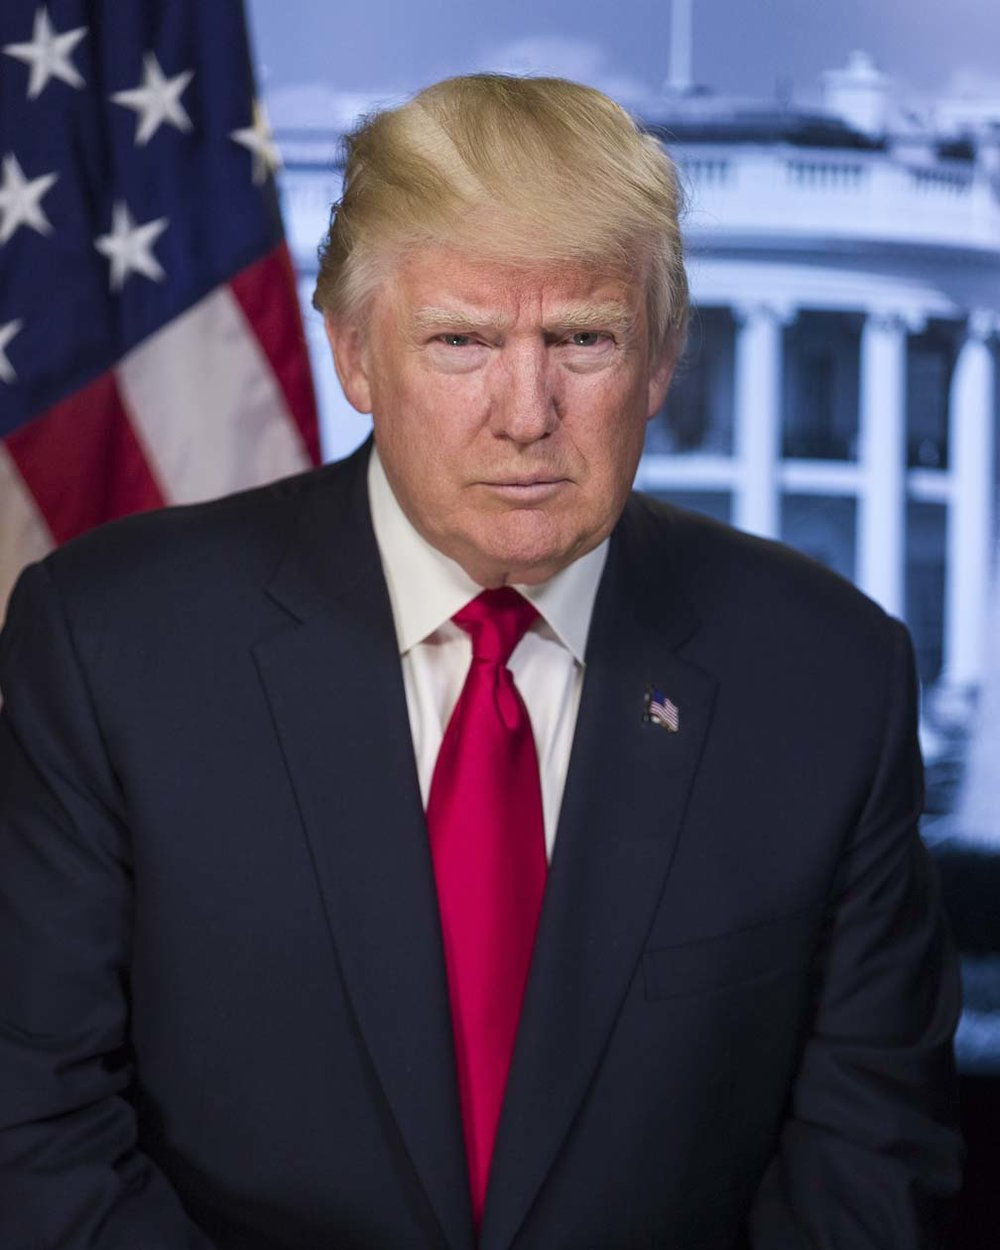 Photo of President Donald J. Trump, courtesy of Whitehouse(dot)gov.